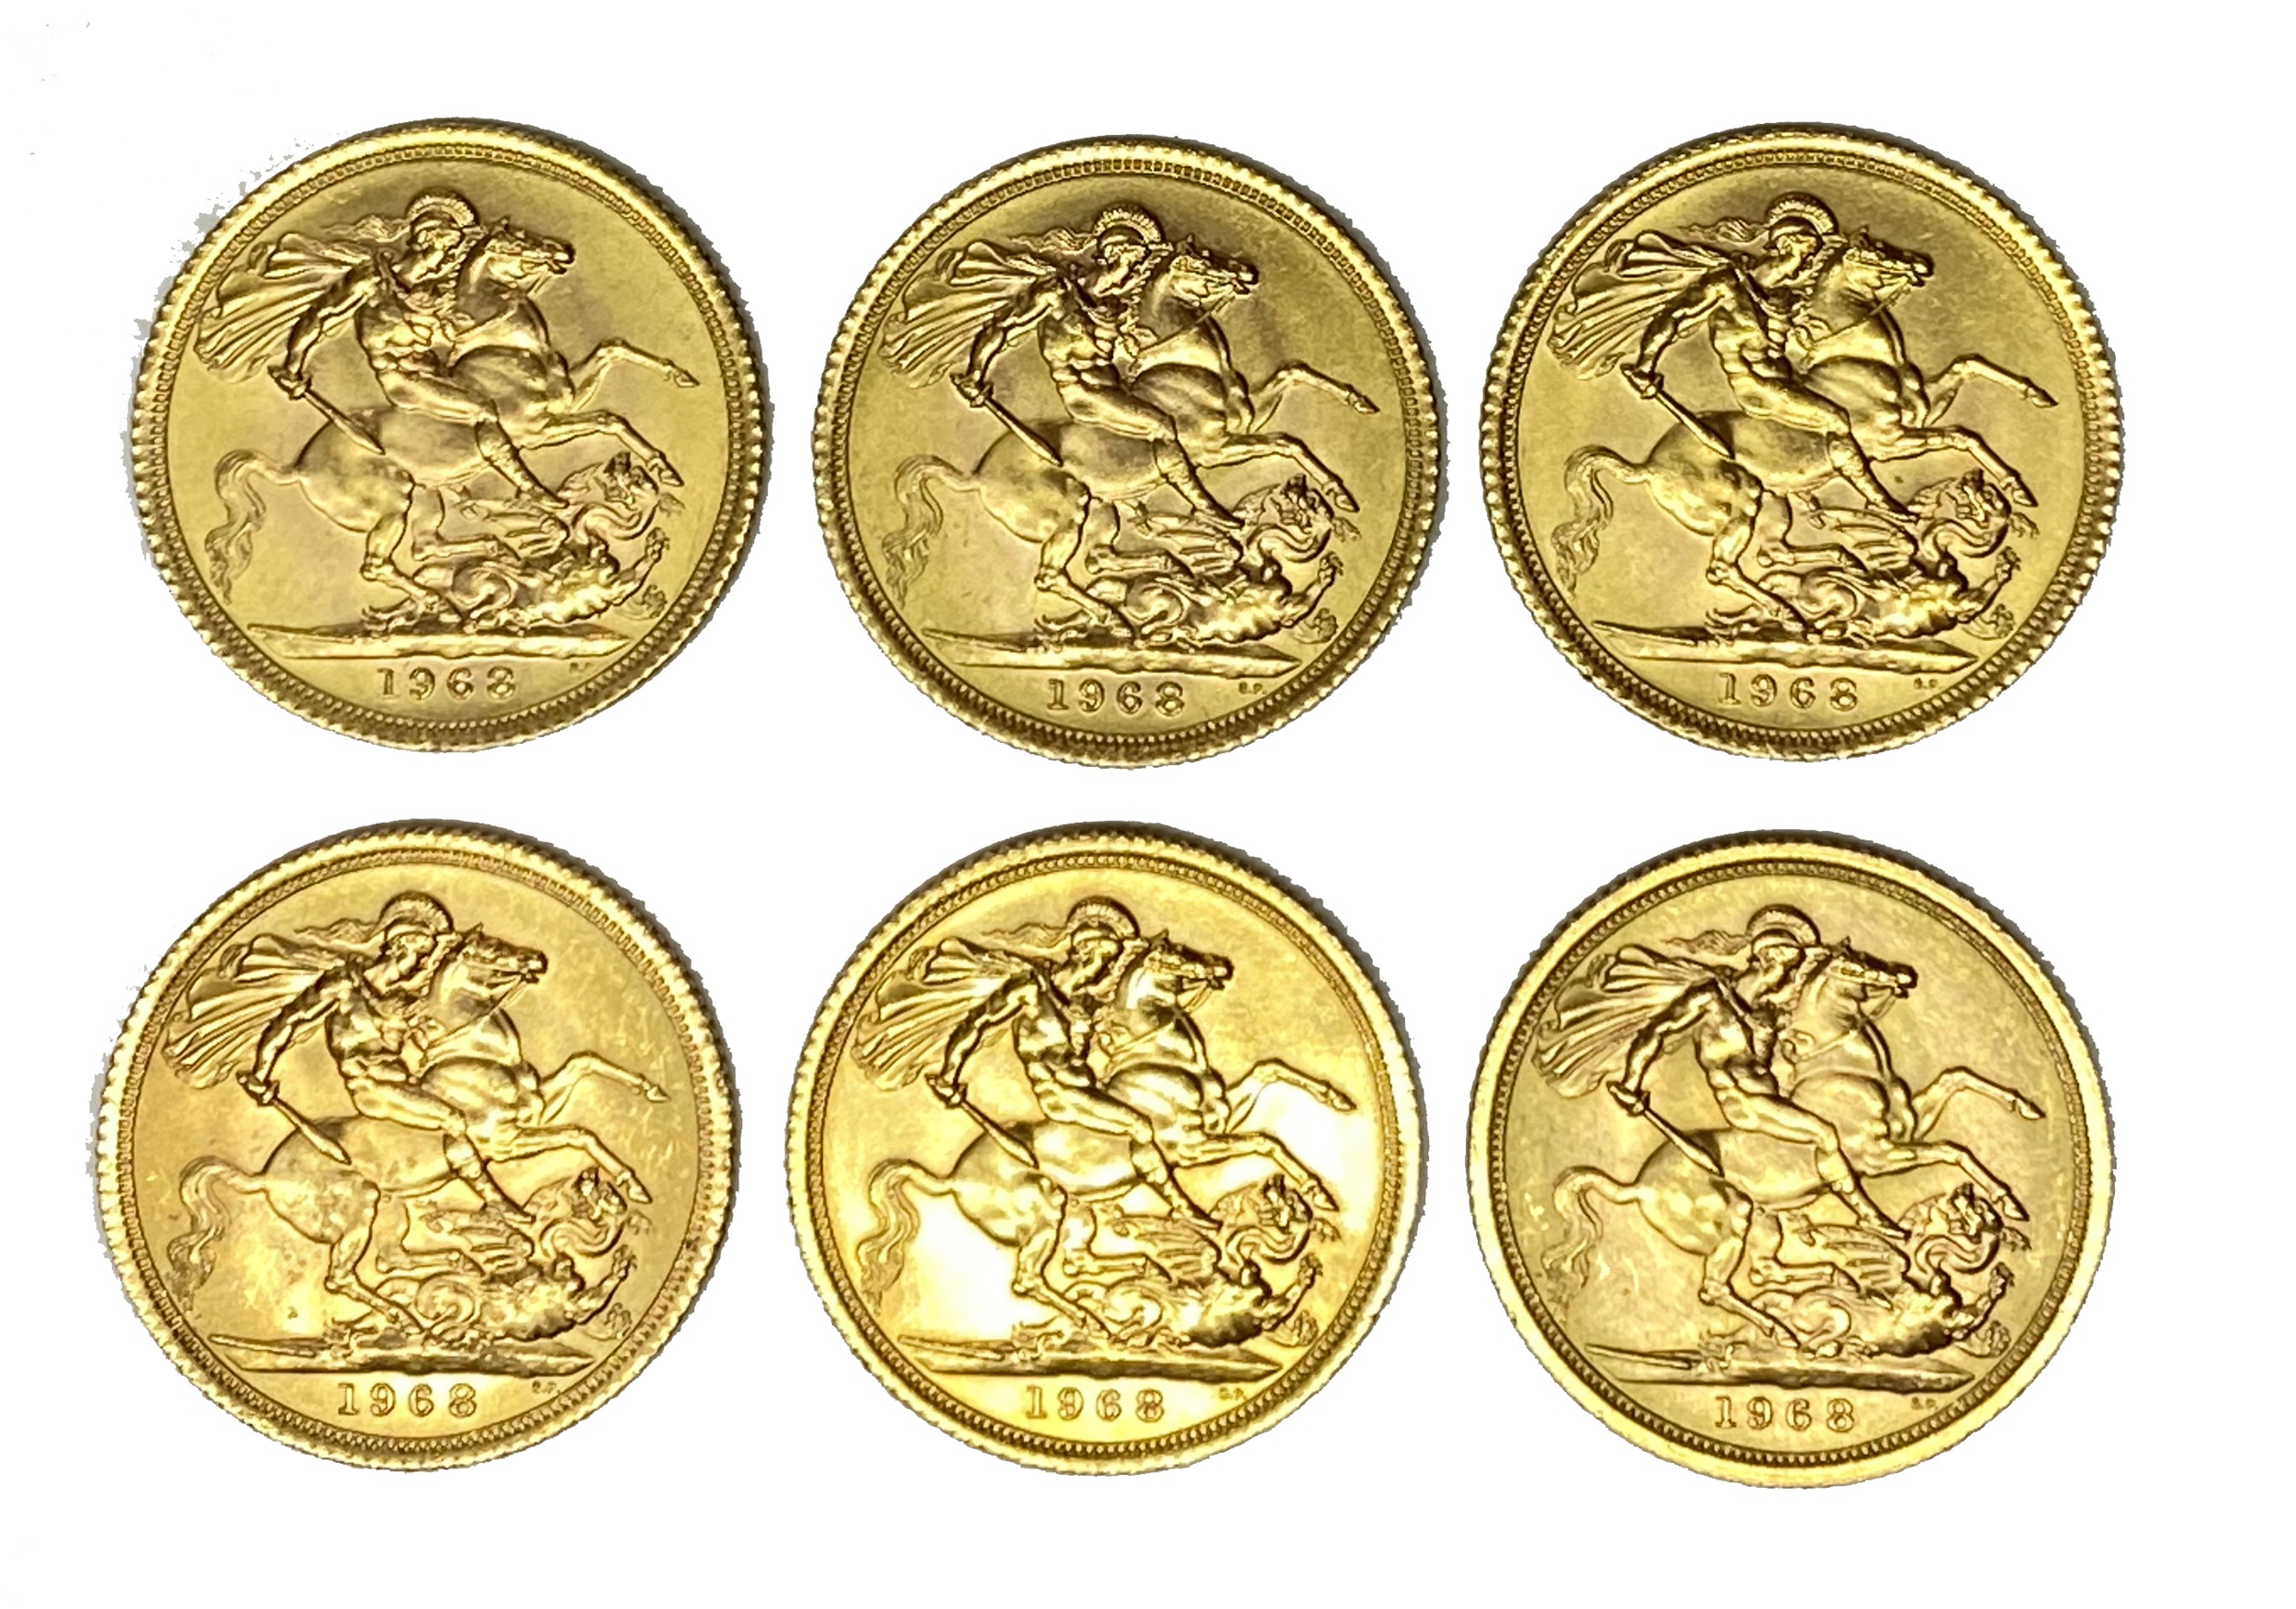 Elizabeth II six gold Sovereign coins, 1968 - Image 2 of 2